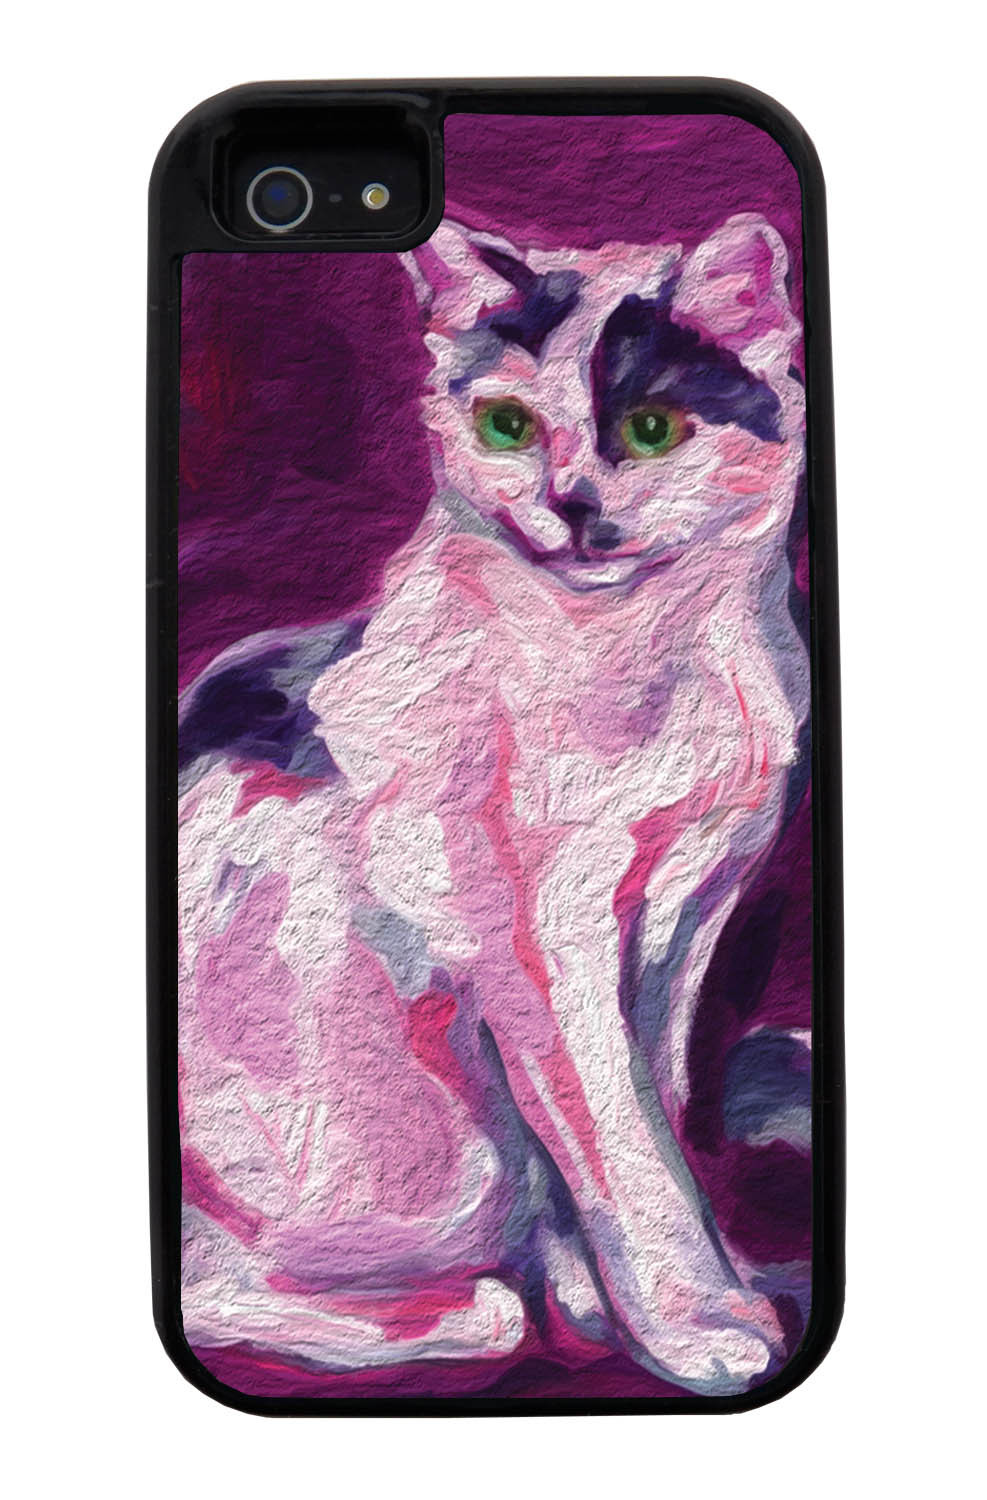 Apple iPhone 5 / 5S Cat Case - Painted Cat Picture - Cute Pictures - Black Tough Hybrid Case